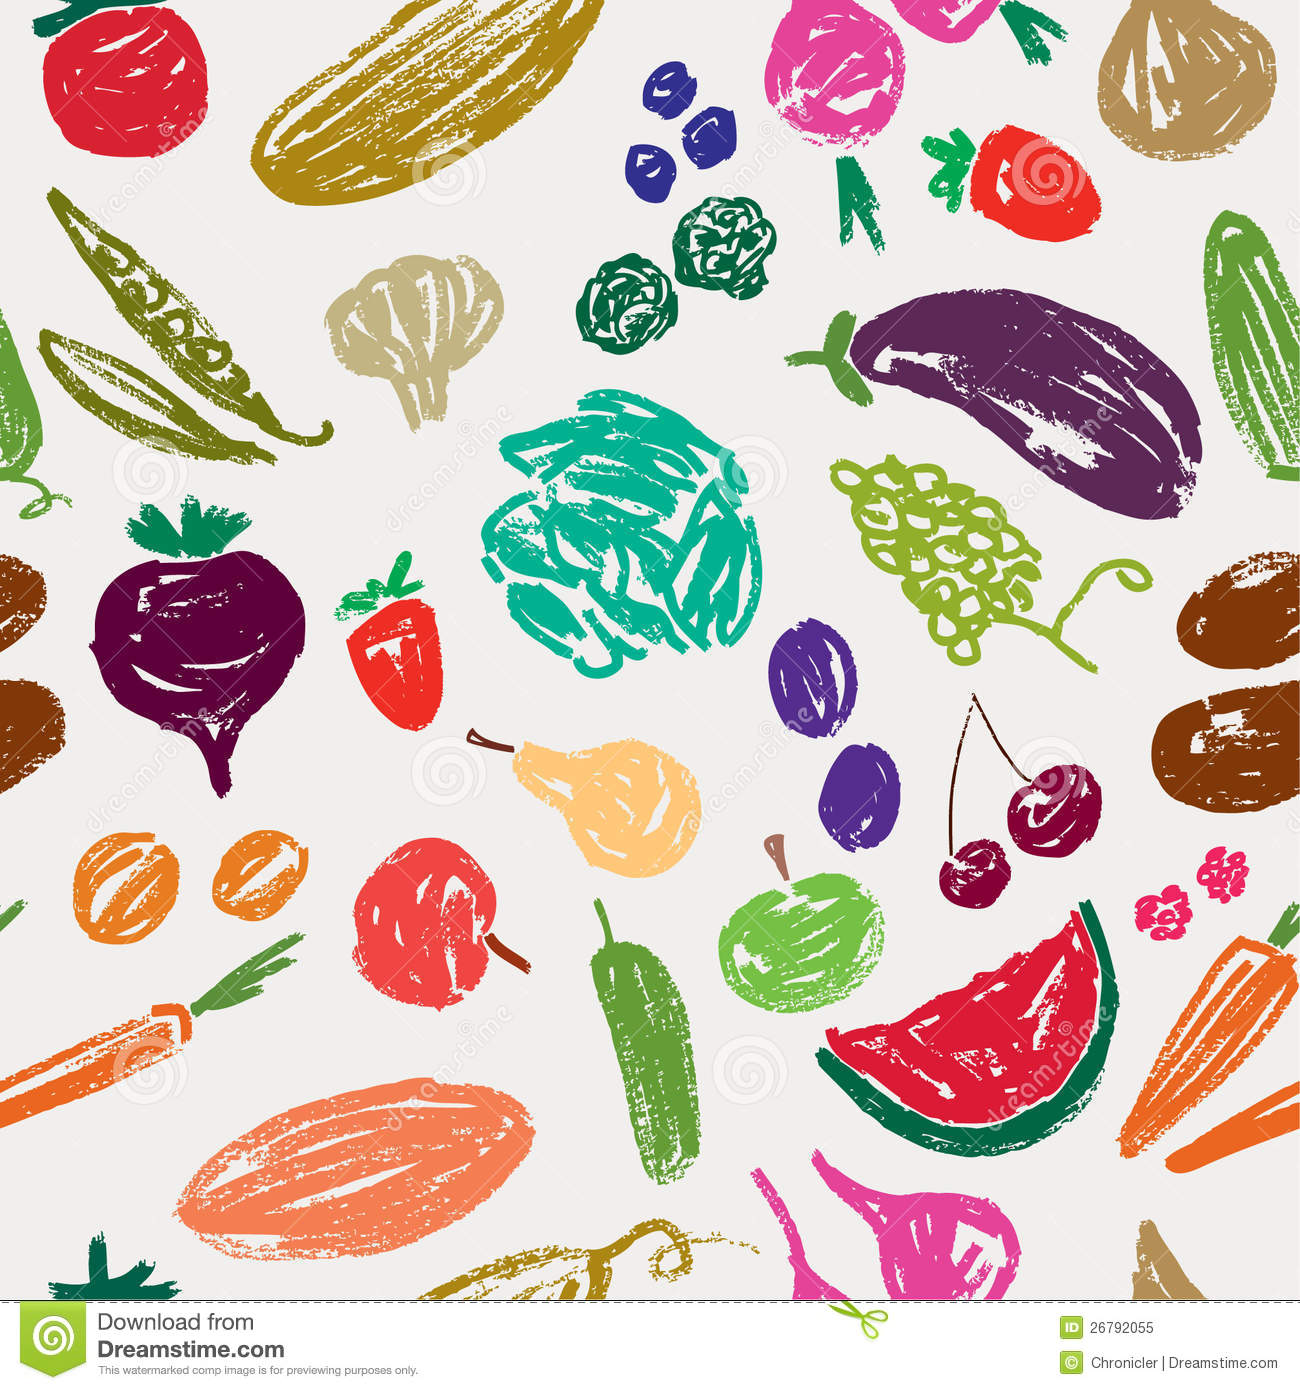 Vegetable pattern - photo#18